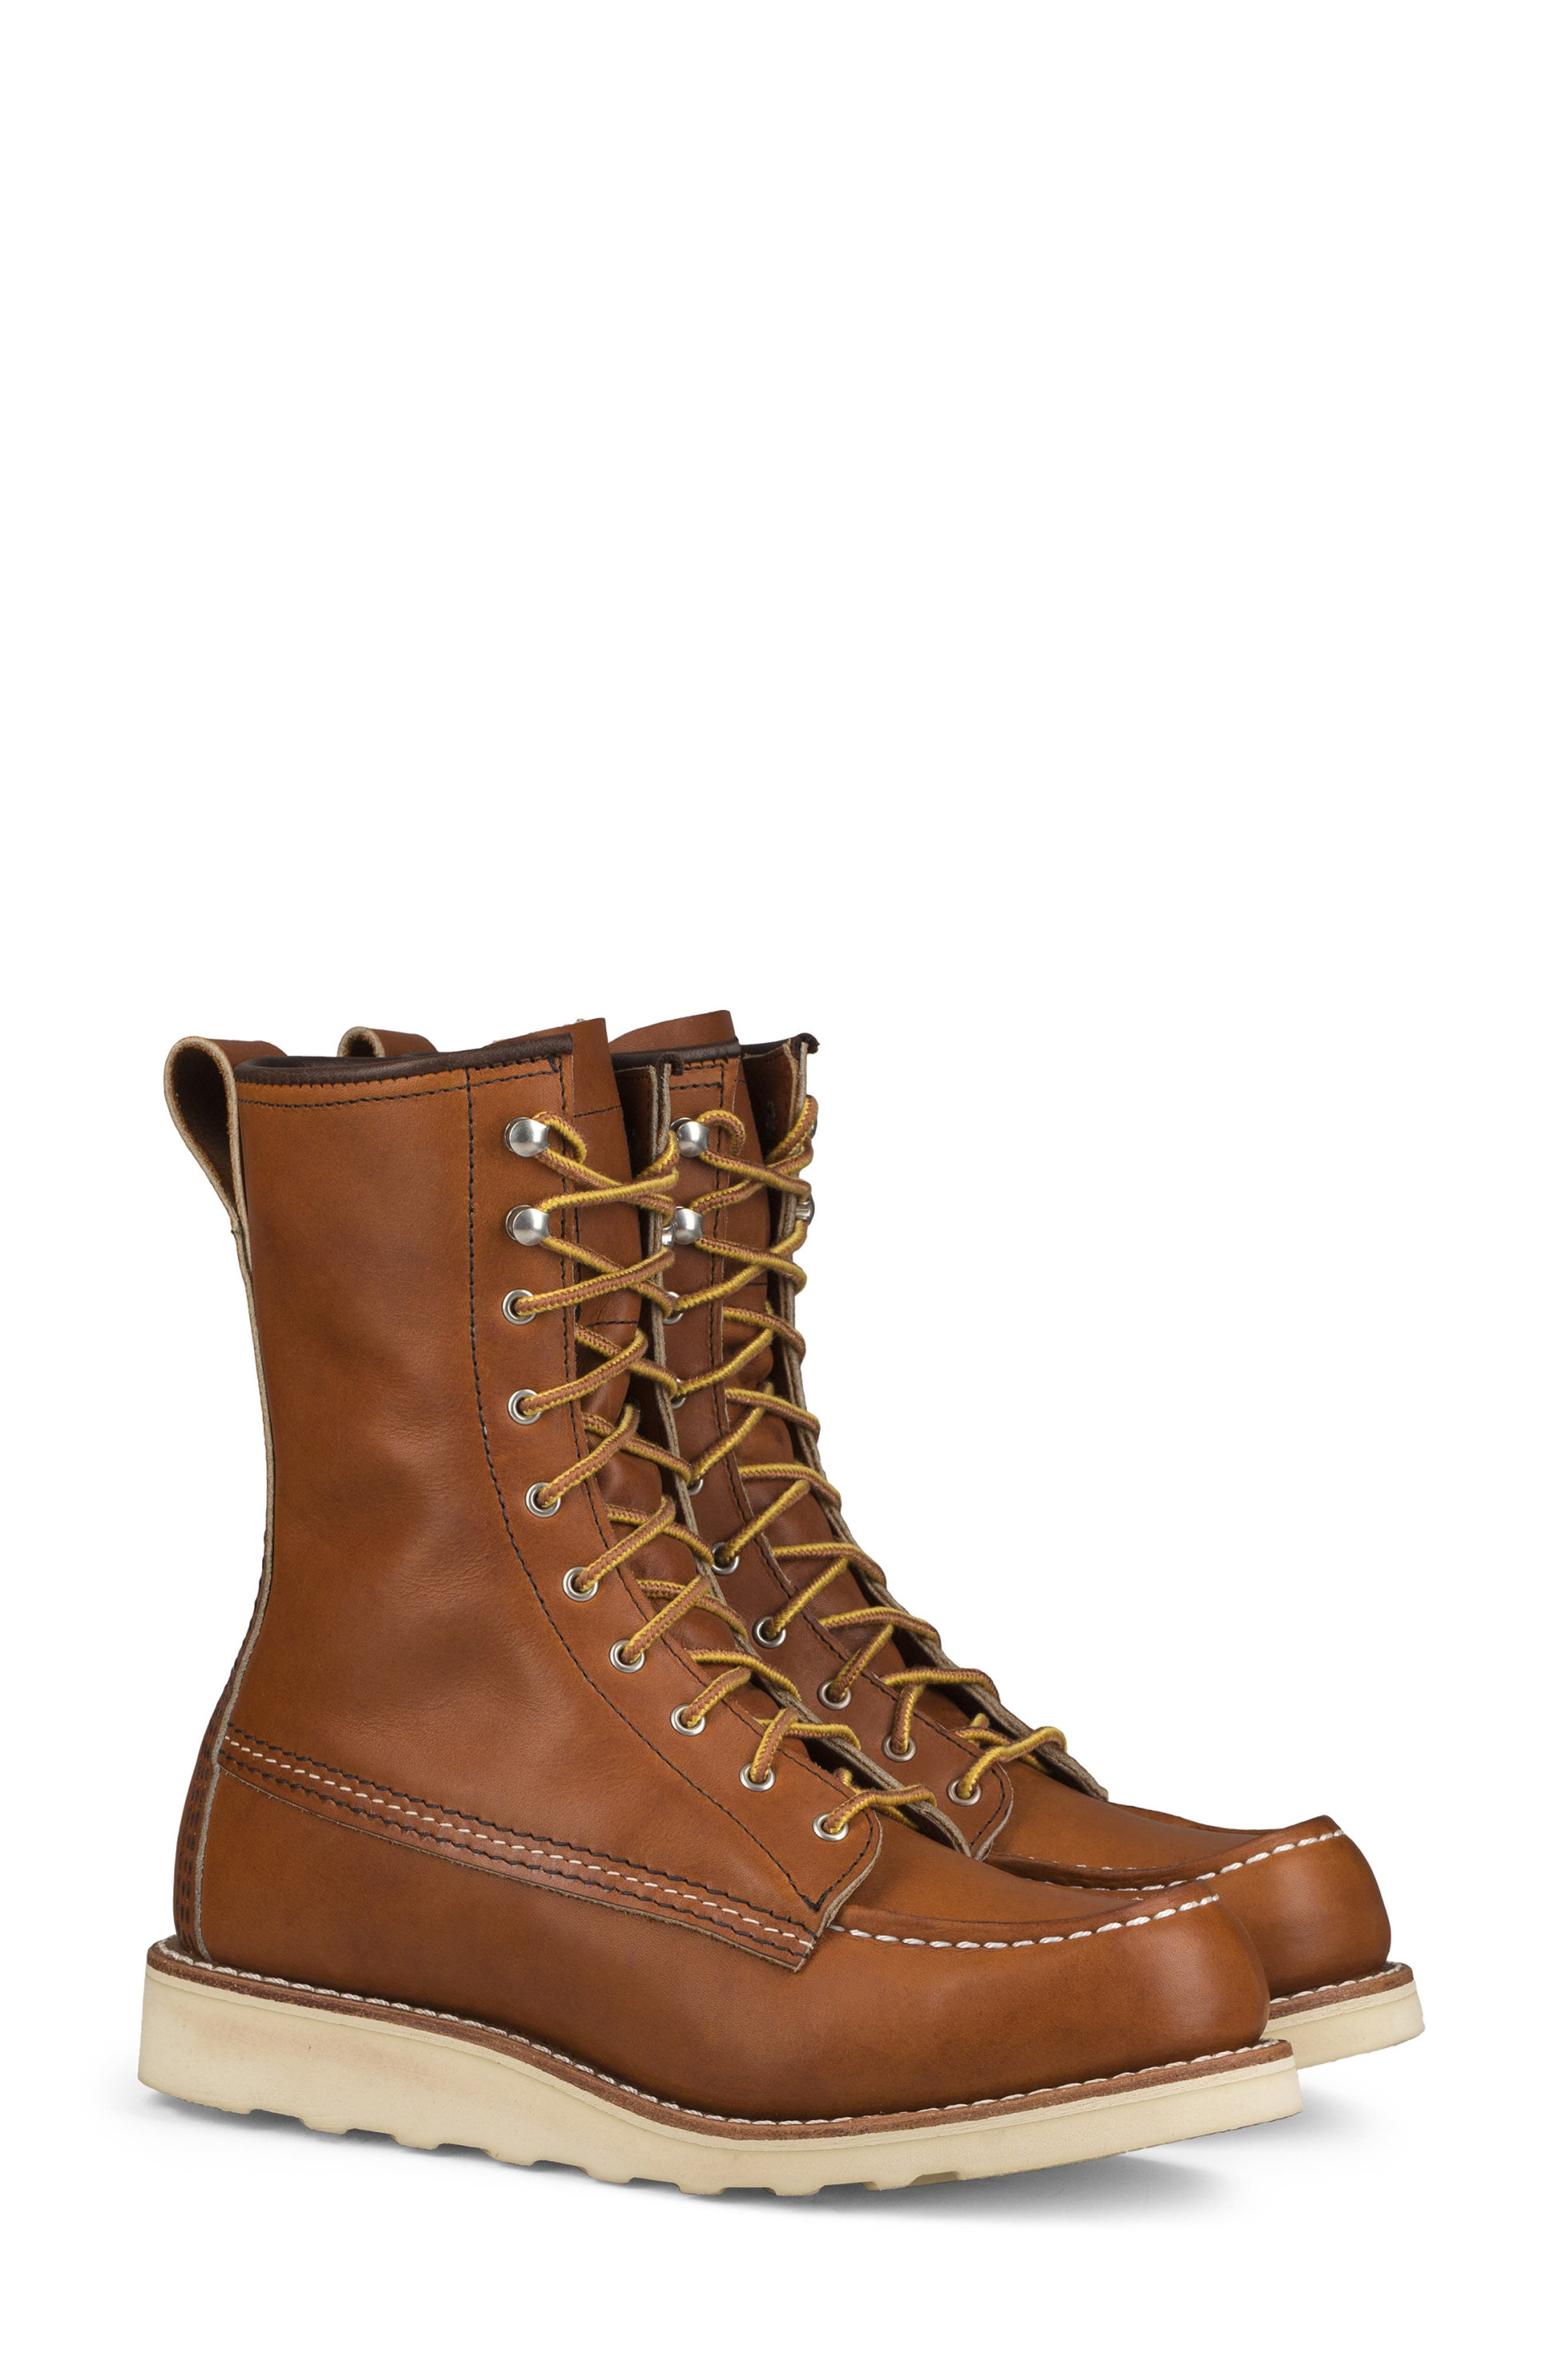 RED WING 8-Inch Moc Boot in Oro Legacy Leather